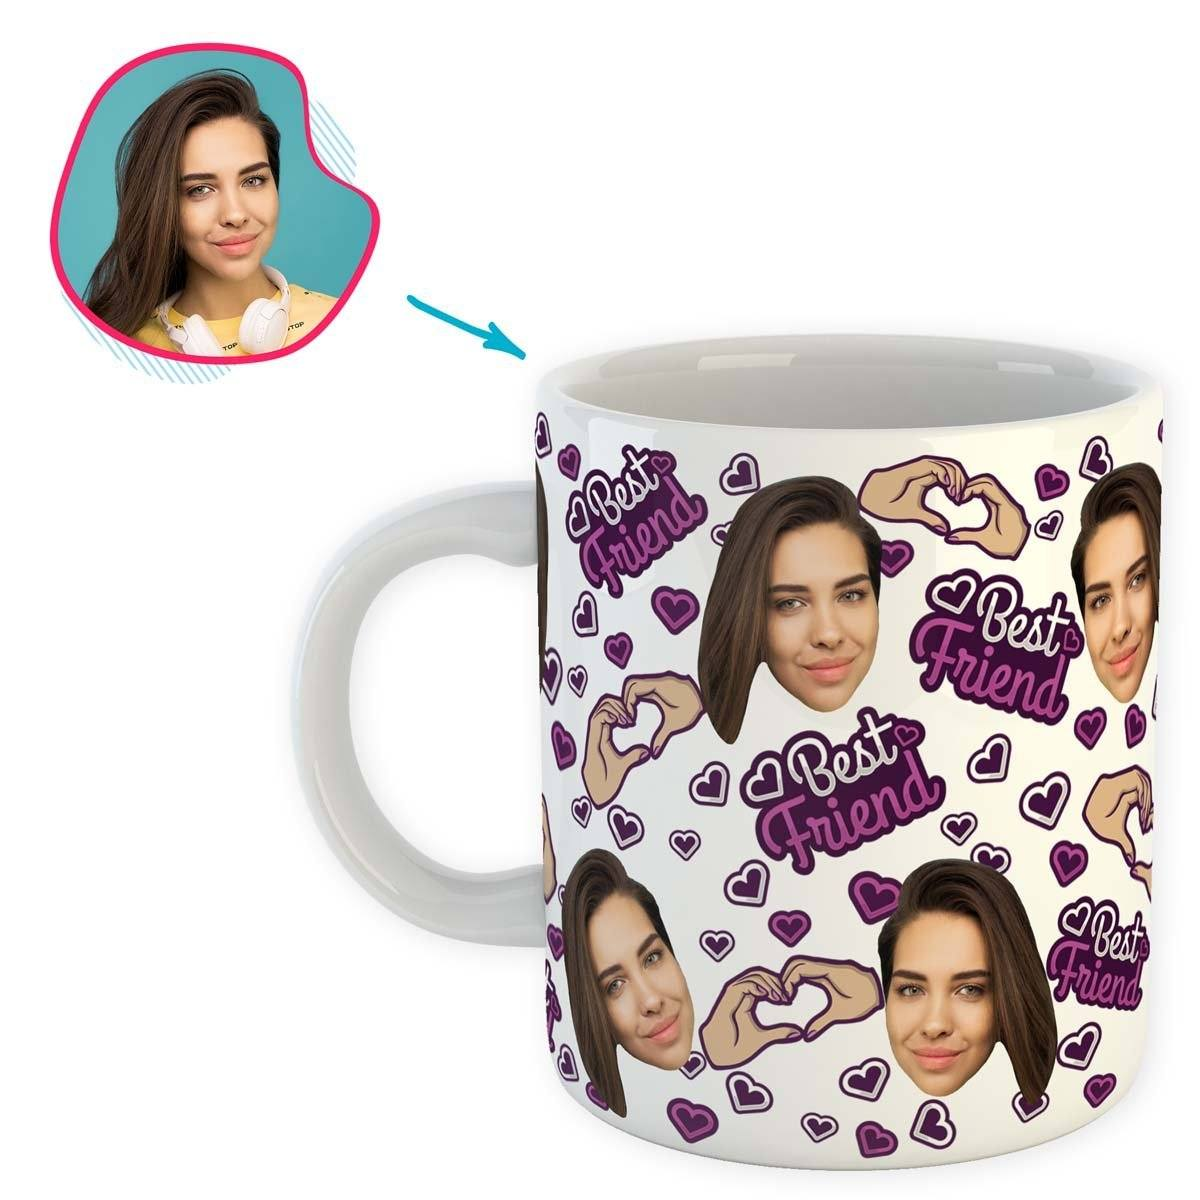 white BFF for Her mug personalized with photo of face printed on it